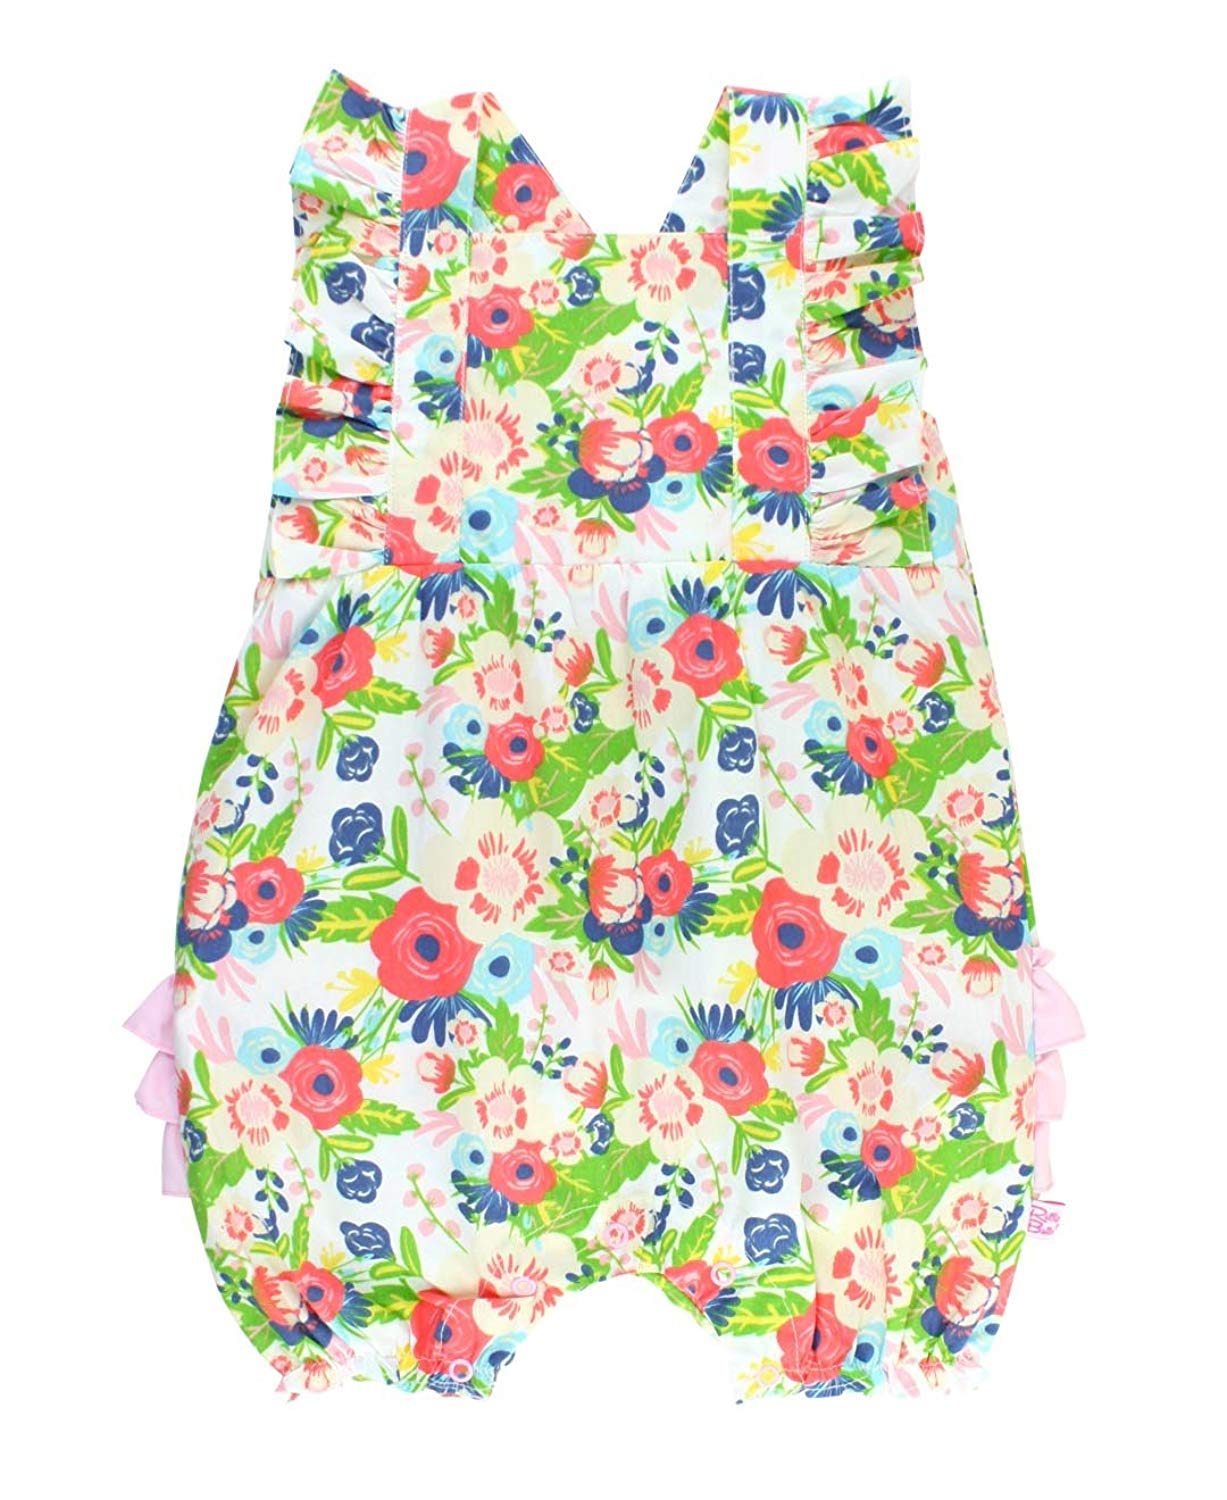 bd6f015a3b9 Get Quotations · RuffleButts Baby Toddler Girls Floral Cross Back Bubble  Romper One-Piece w Pink